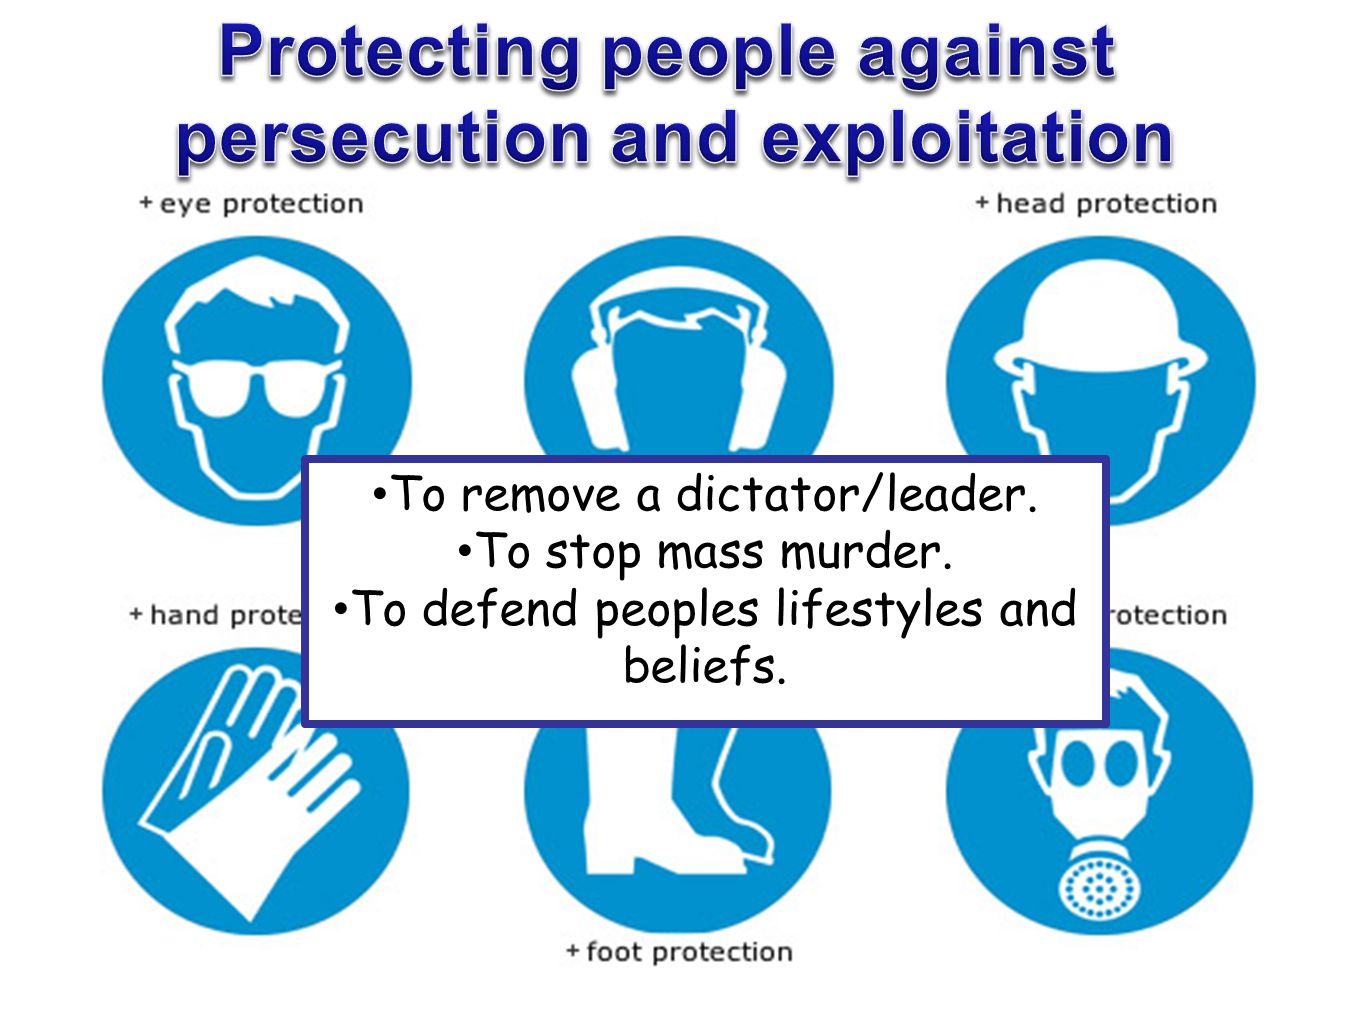 Protecting people against persecution and exploitation